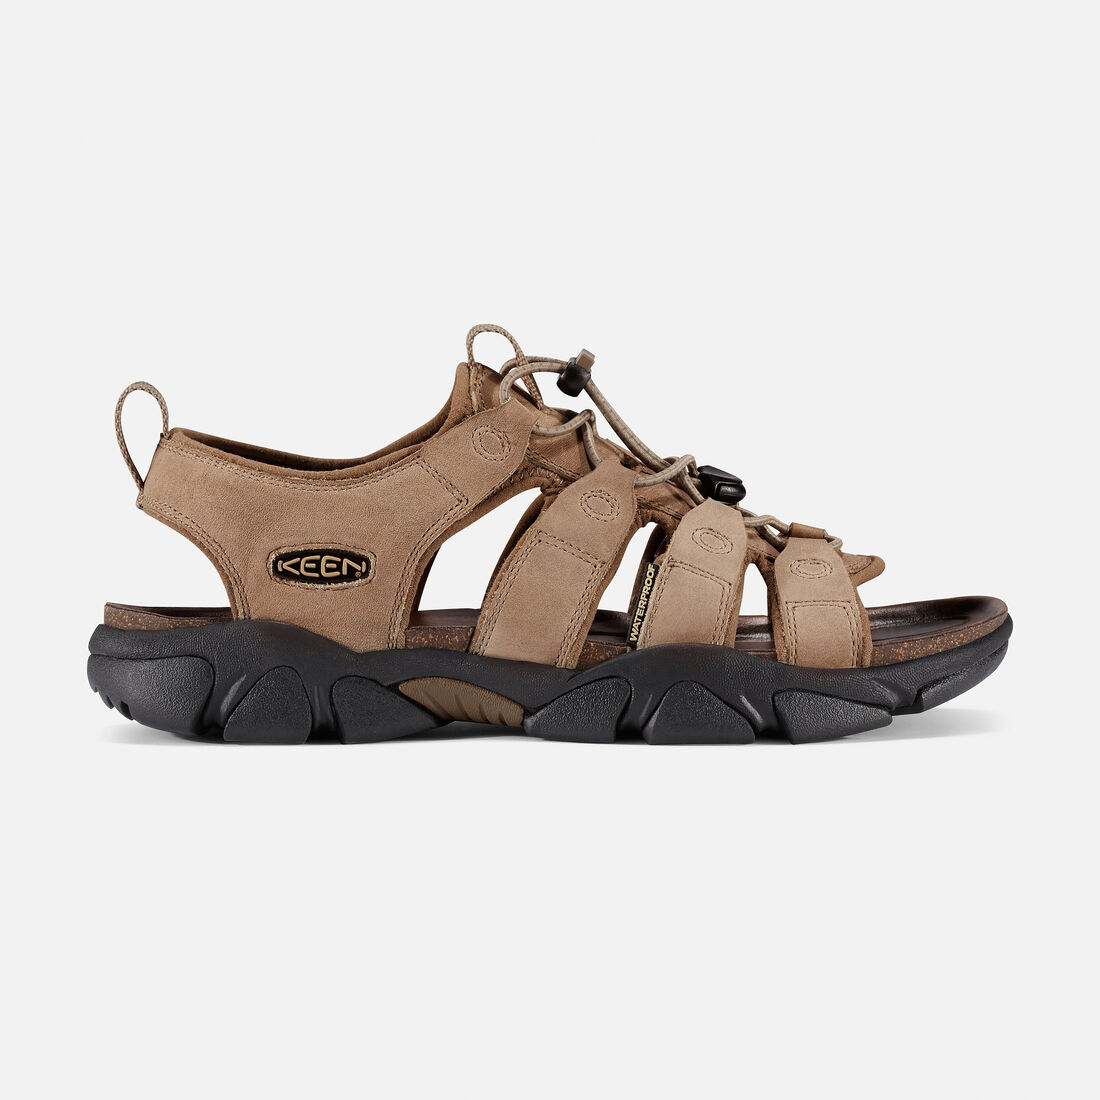 17db588fdc3 DAYTONA SANDALES POUR HOMMES in Timberwolf - large view.